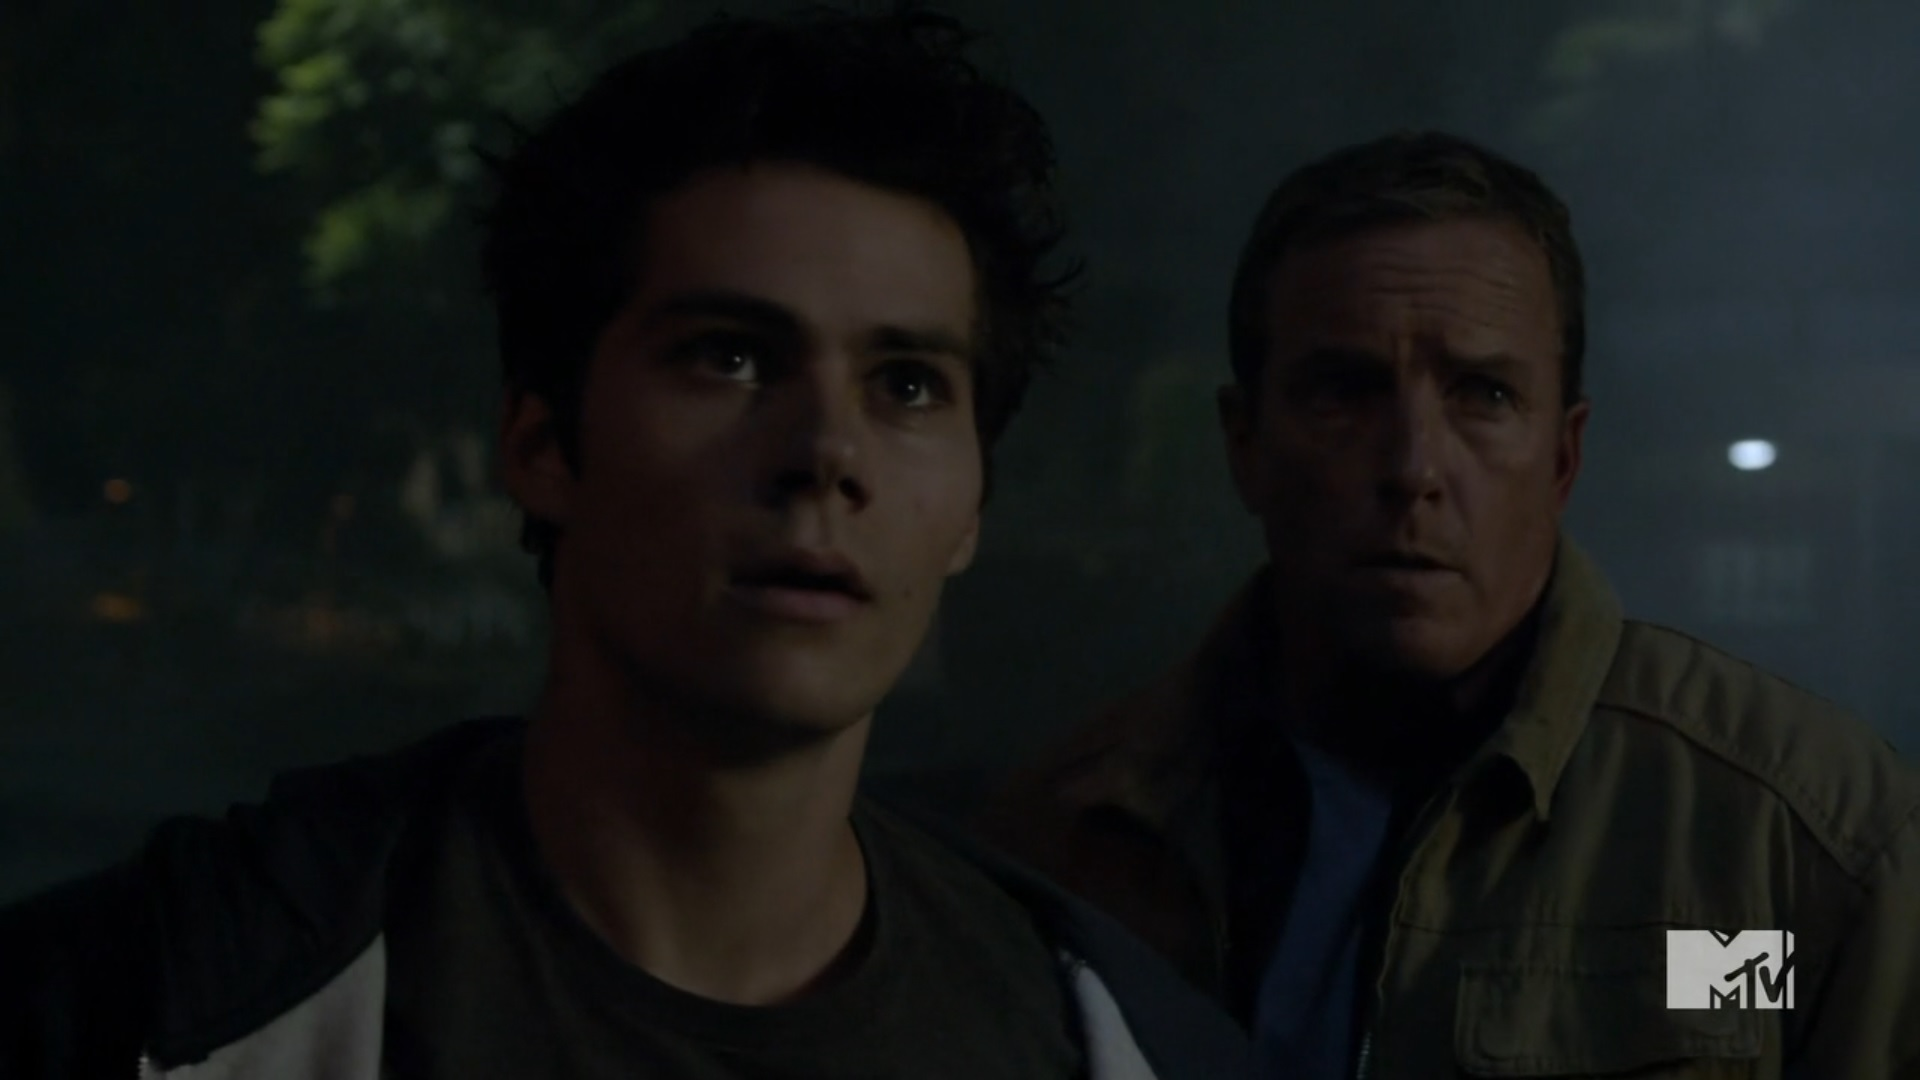 Teen Wolf Season 3 Episode 20 Echo House Dylan Obrien Linden Ashby Stiles And Dad In Front Of Echo House